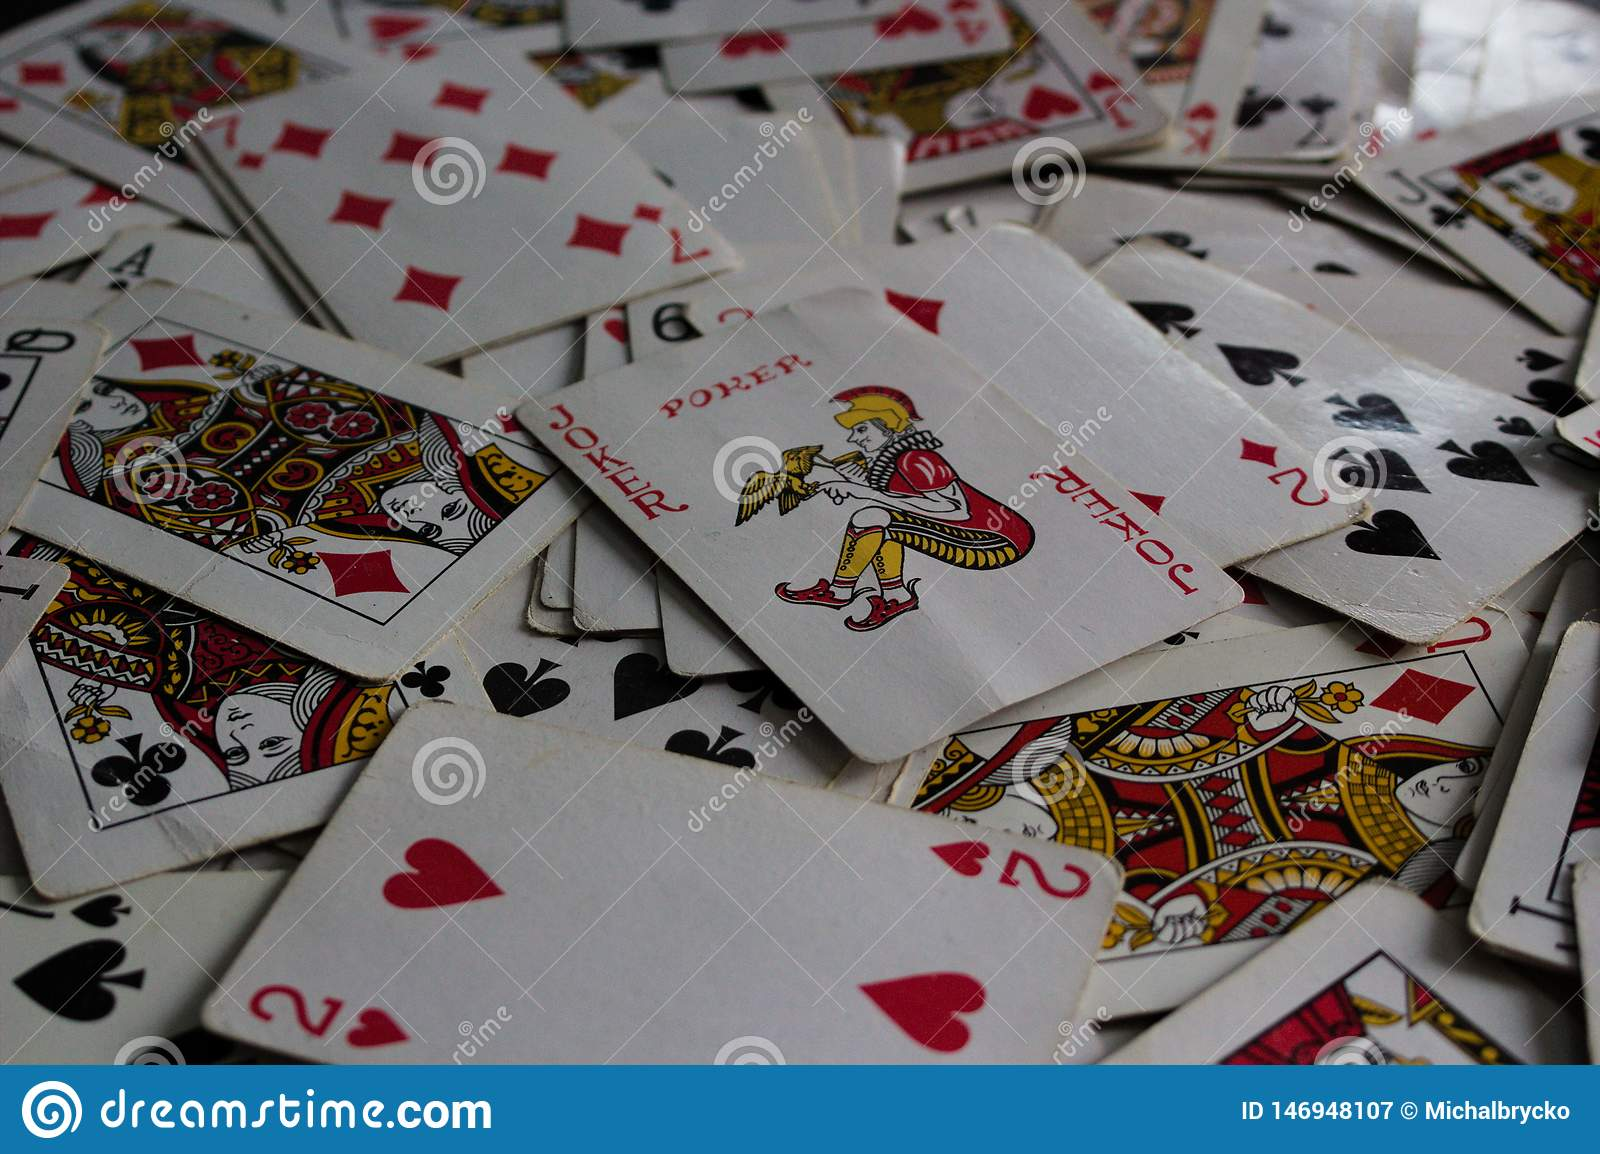 Lying cards with the selected card on top as a joker lady